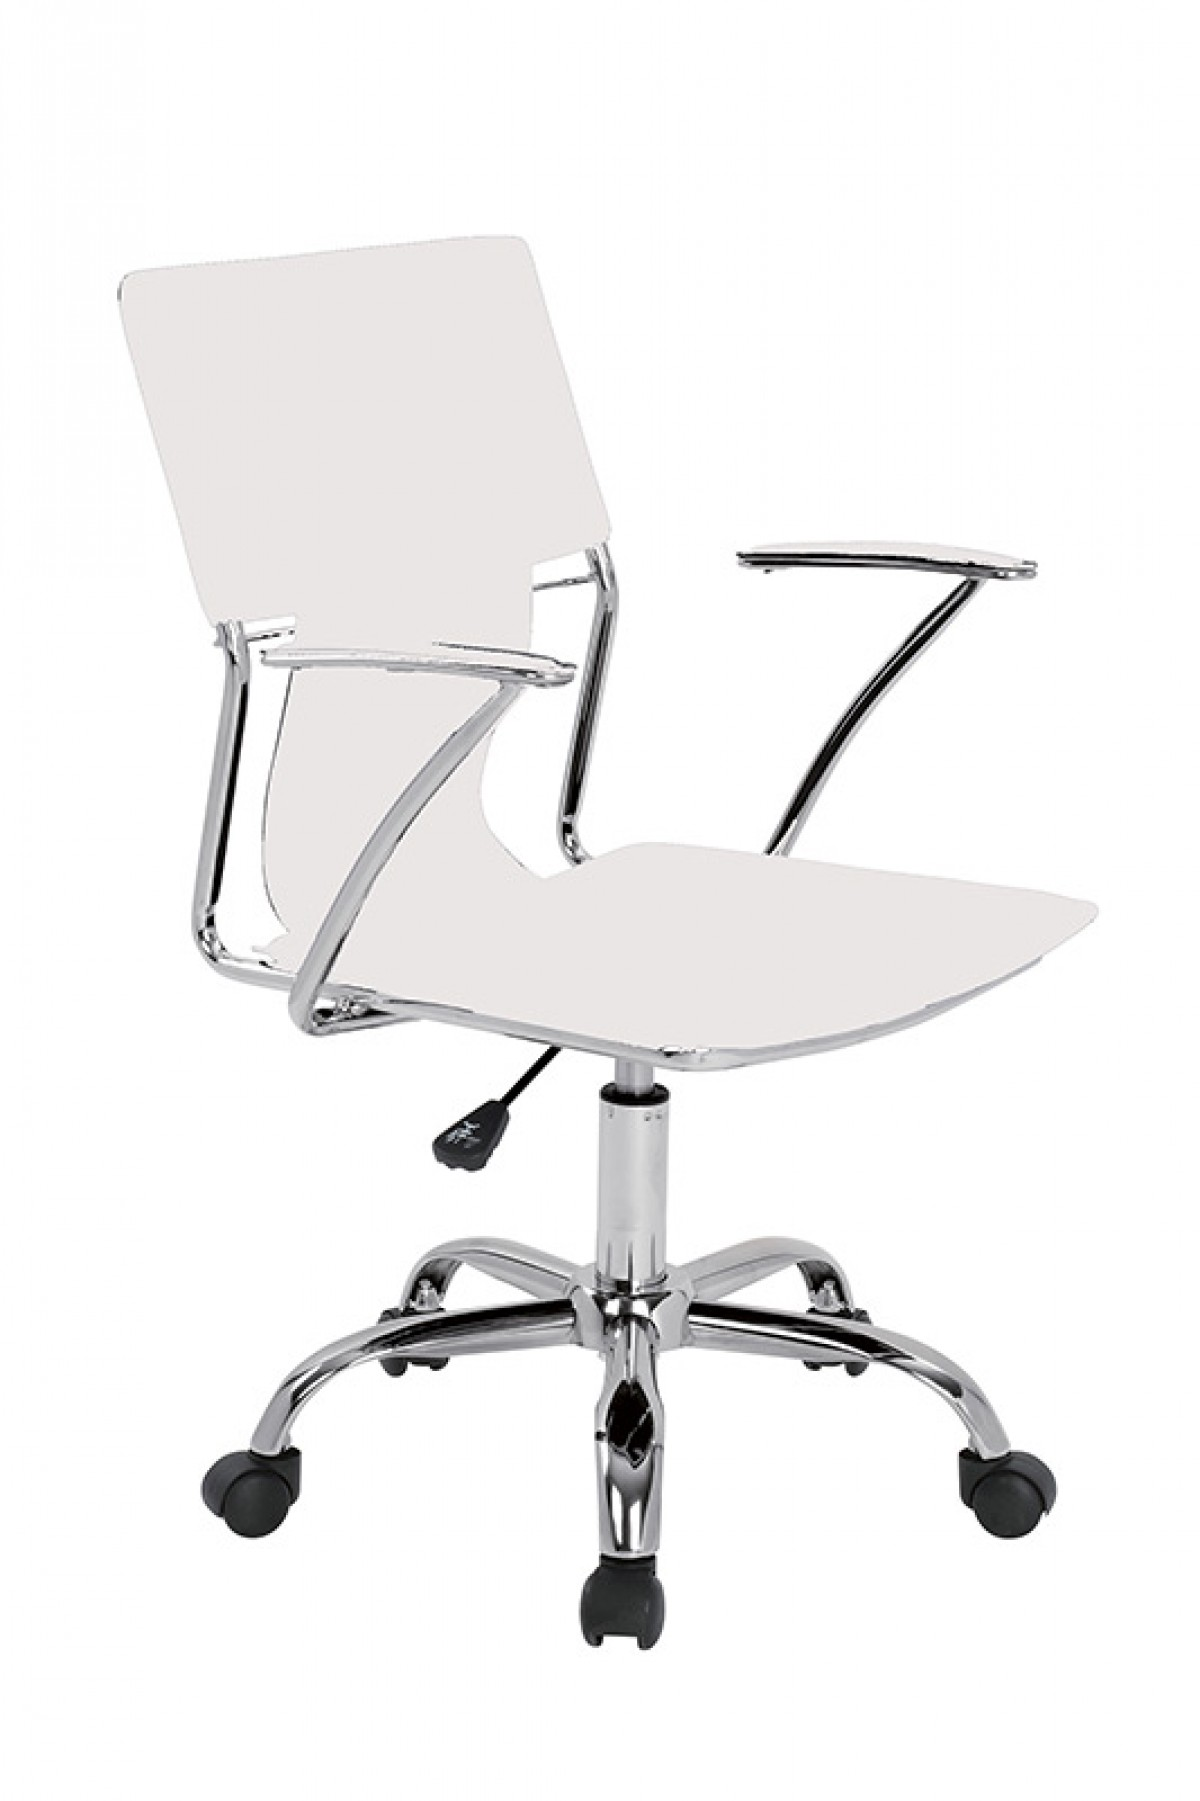 Modrest Emery - Office Desk Chair